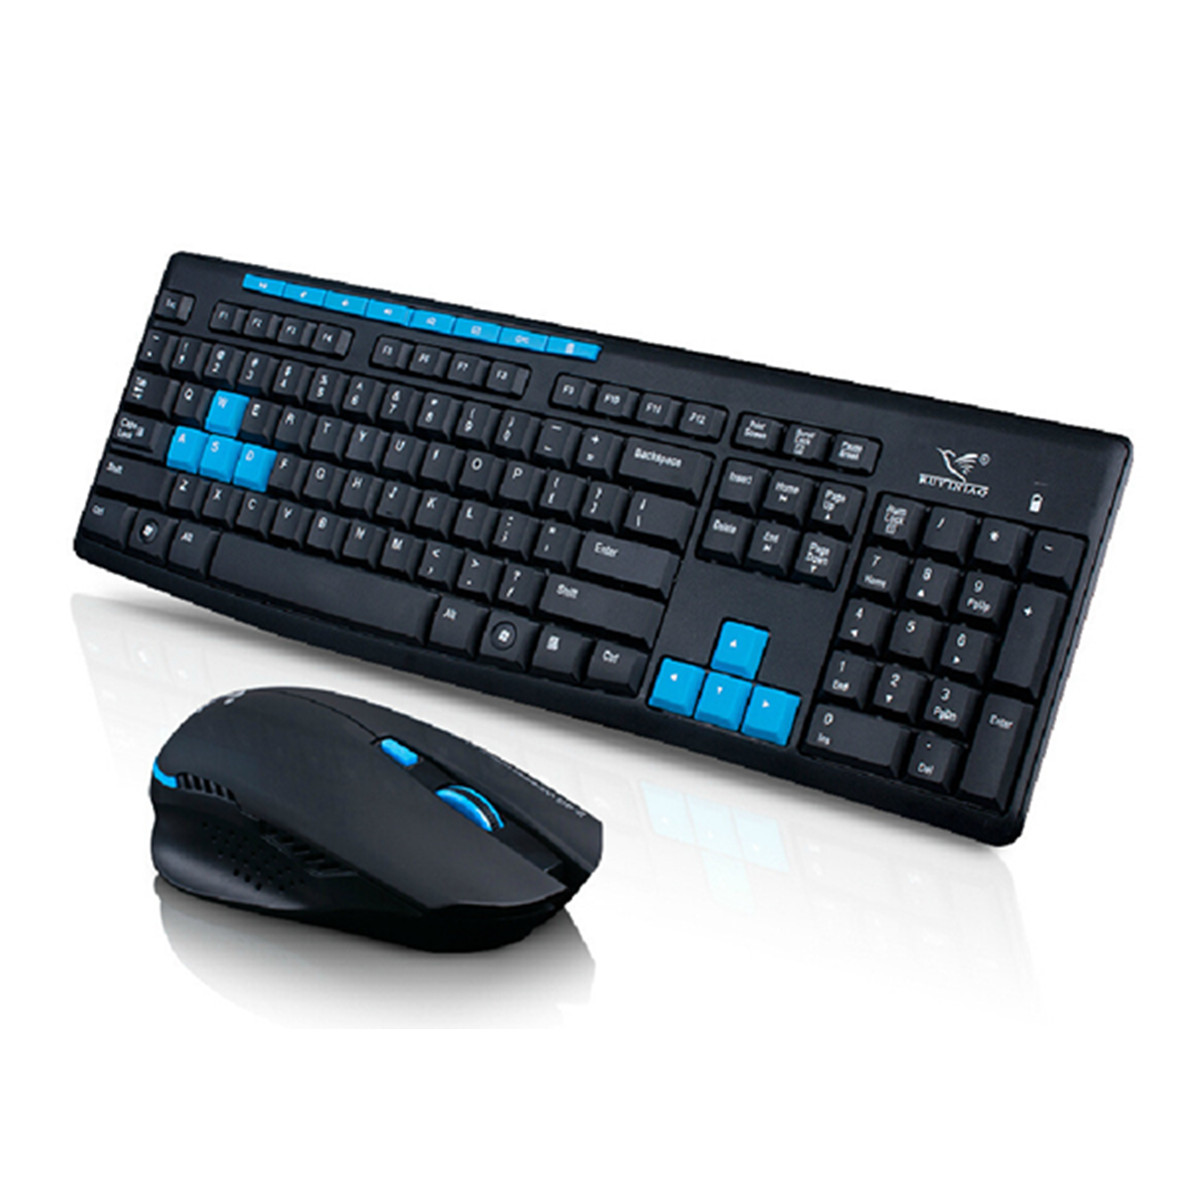 2.4Ghz Wireless Backlit Silent Keyboard And Mouse Combo For Game Home Office Laptop Desktop Ergonomic Waterproof Keyboard